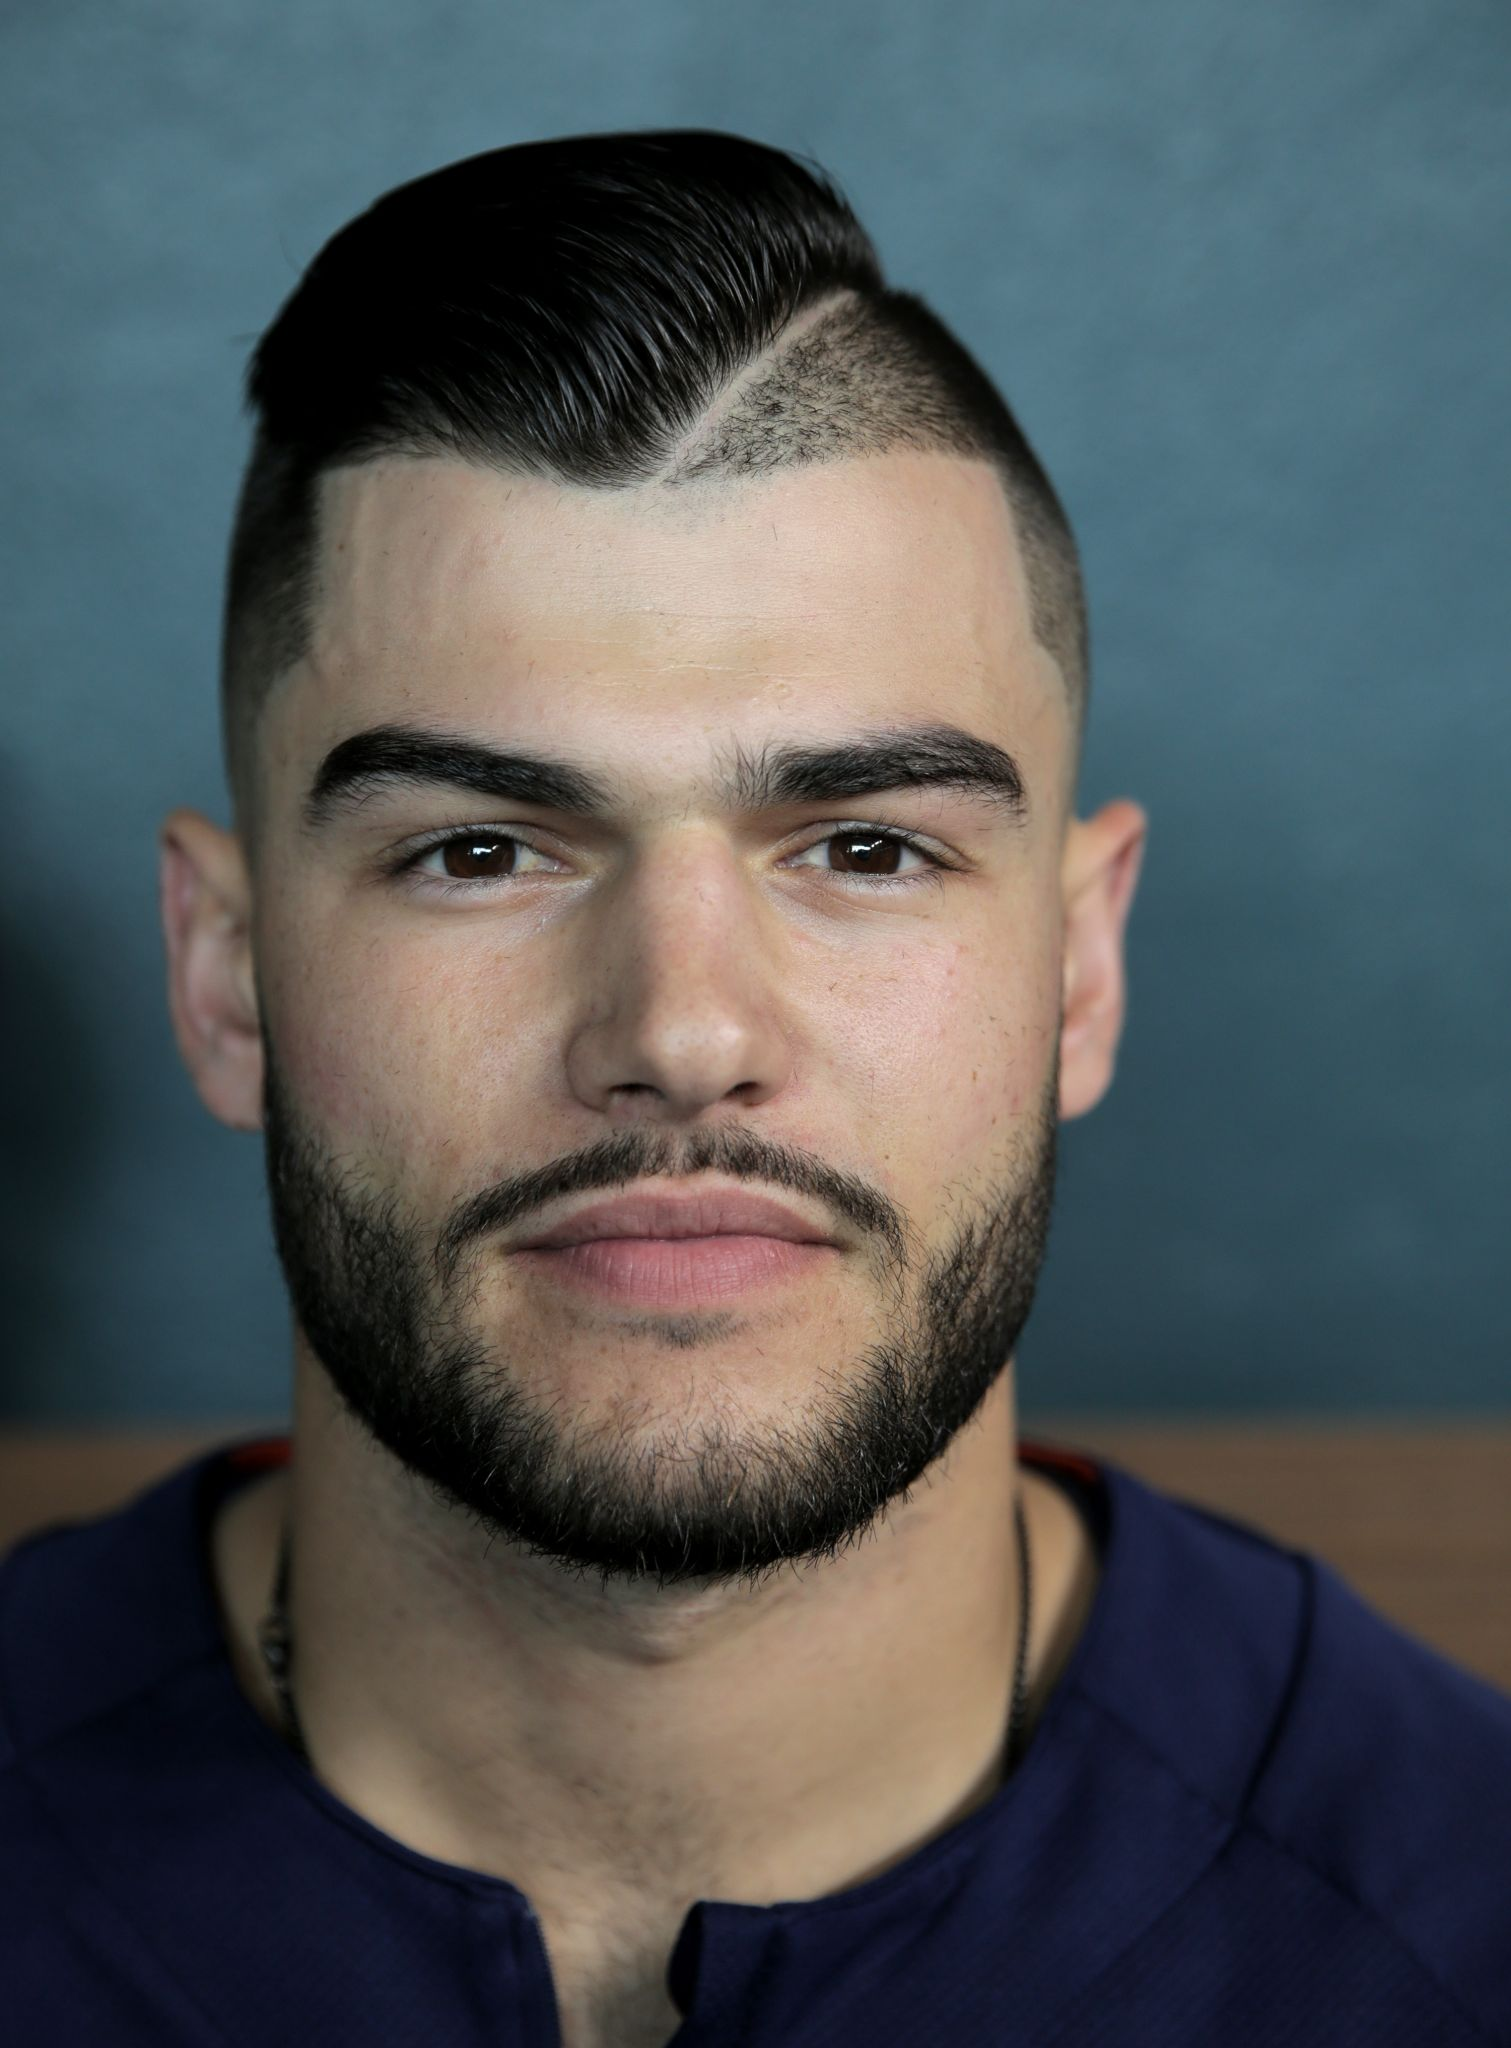 A cut above: The legend of the Astros' hair - Houston